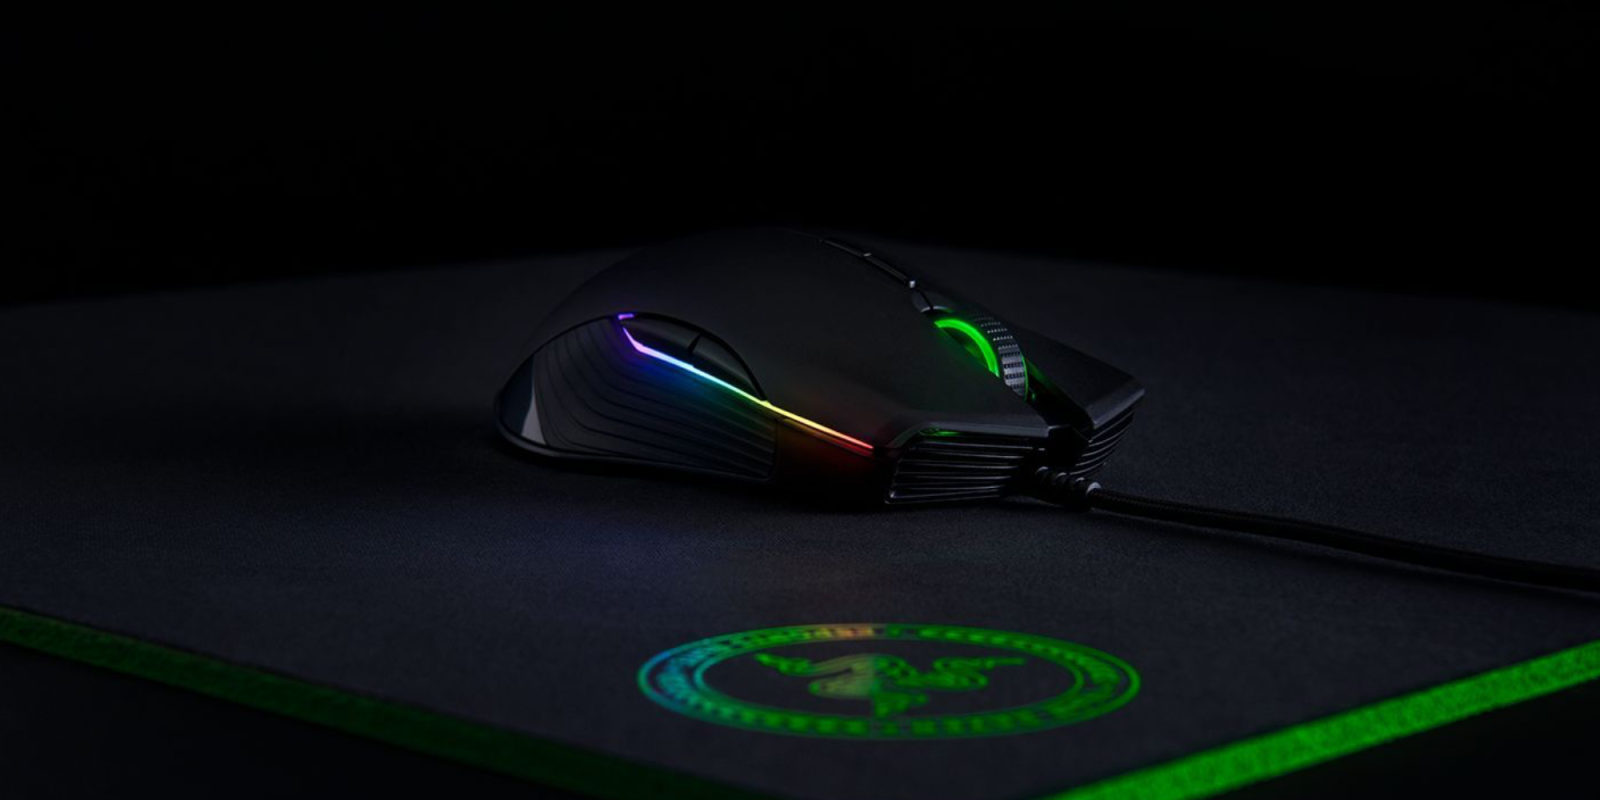 Knock 50% off Razer's Lancehead Tournament RGB Gaming Mouse at a low of $40